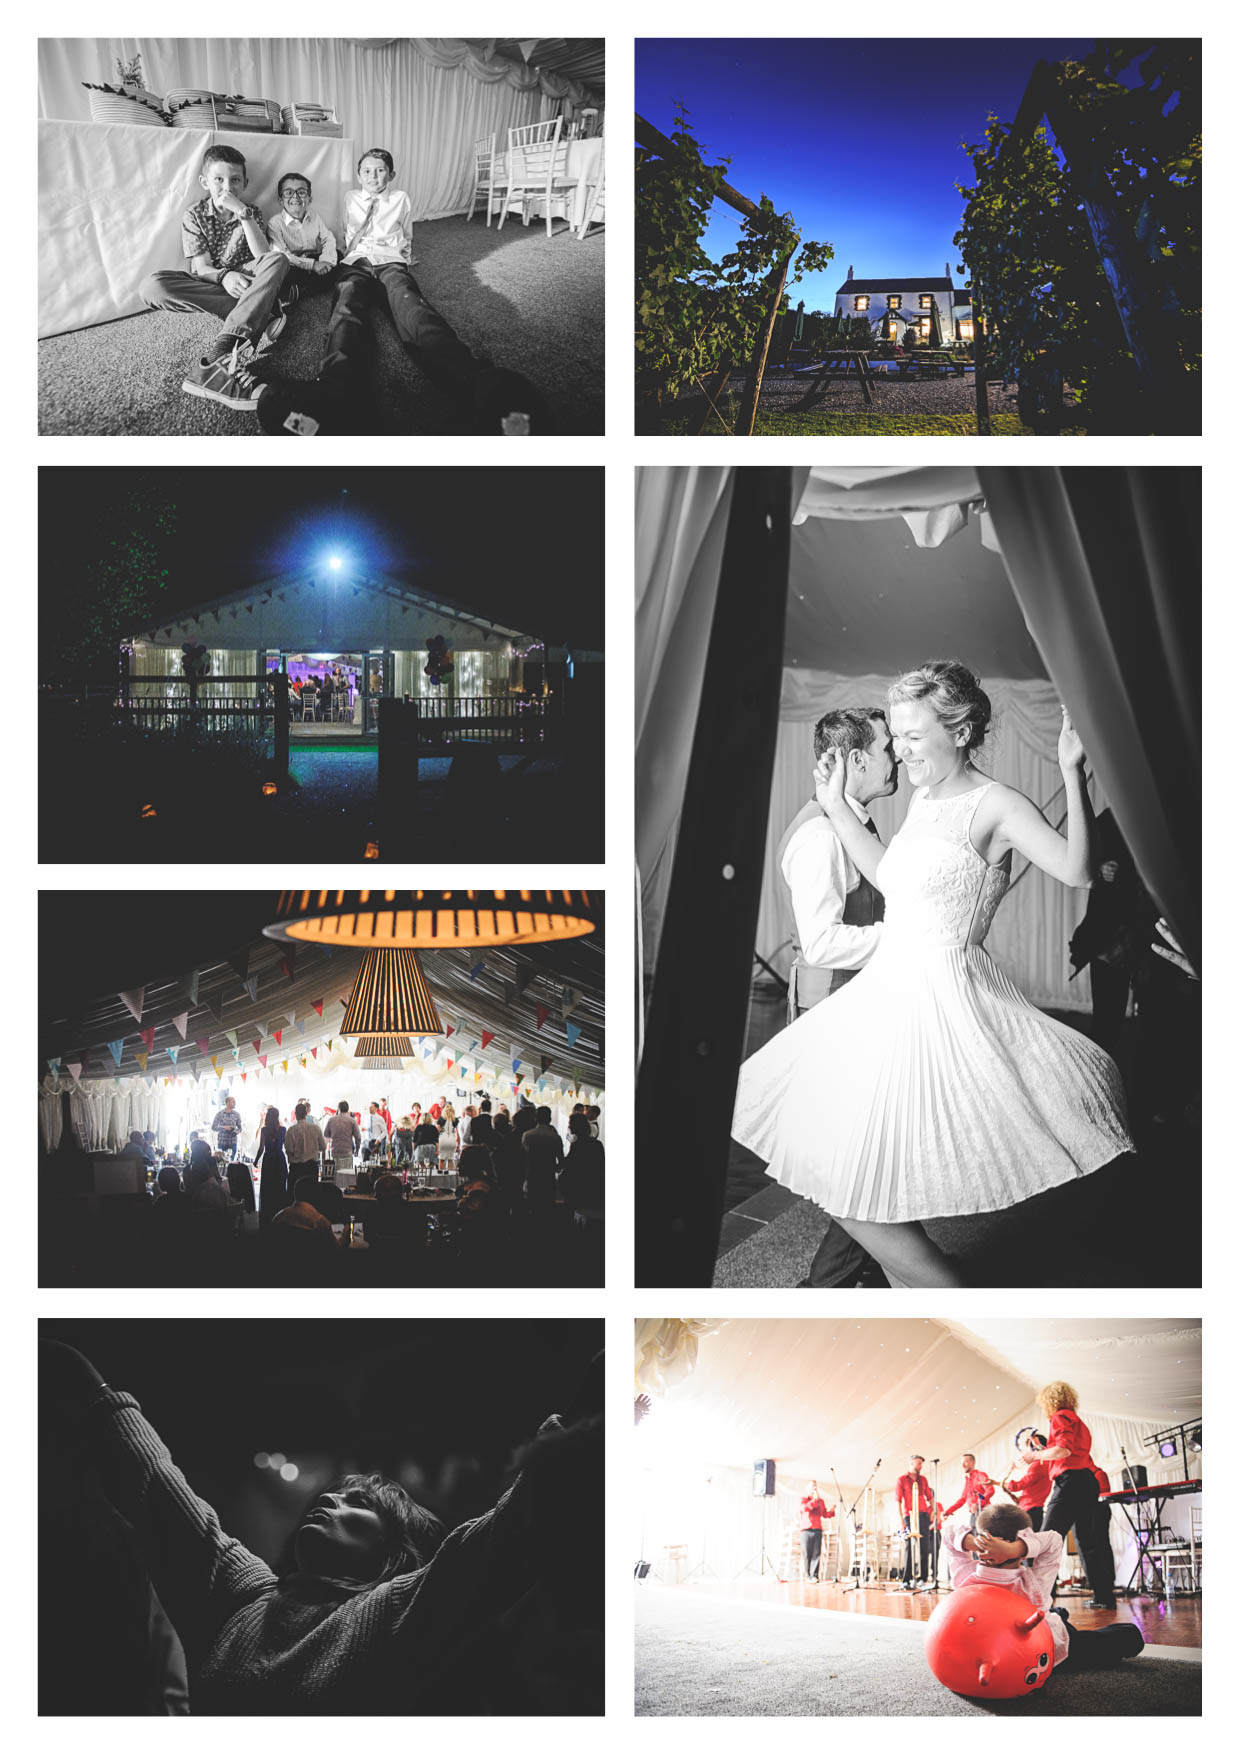 A wedding at llanerch vineyard with the evening celebrations within the marquee